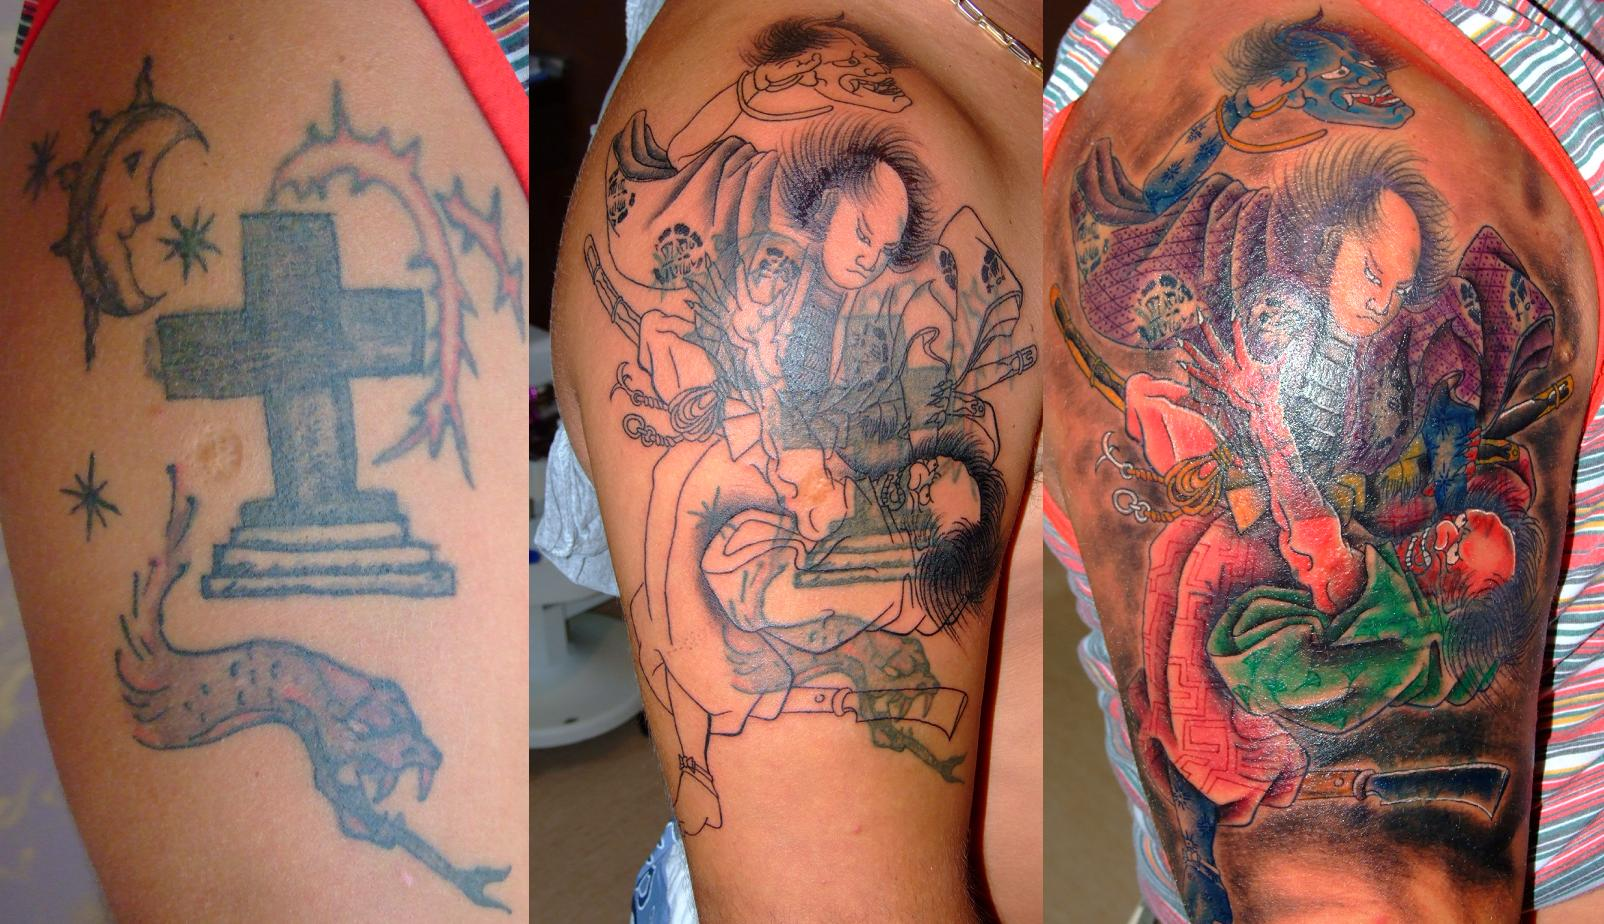 Samurai in fight cover up arm tattoo design tattoomagz for Tattoo sleeve cover up forearm